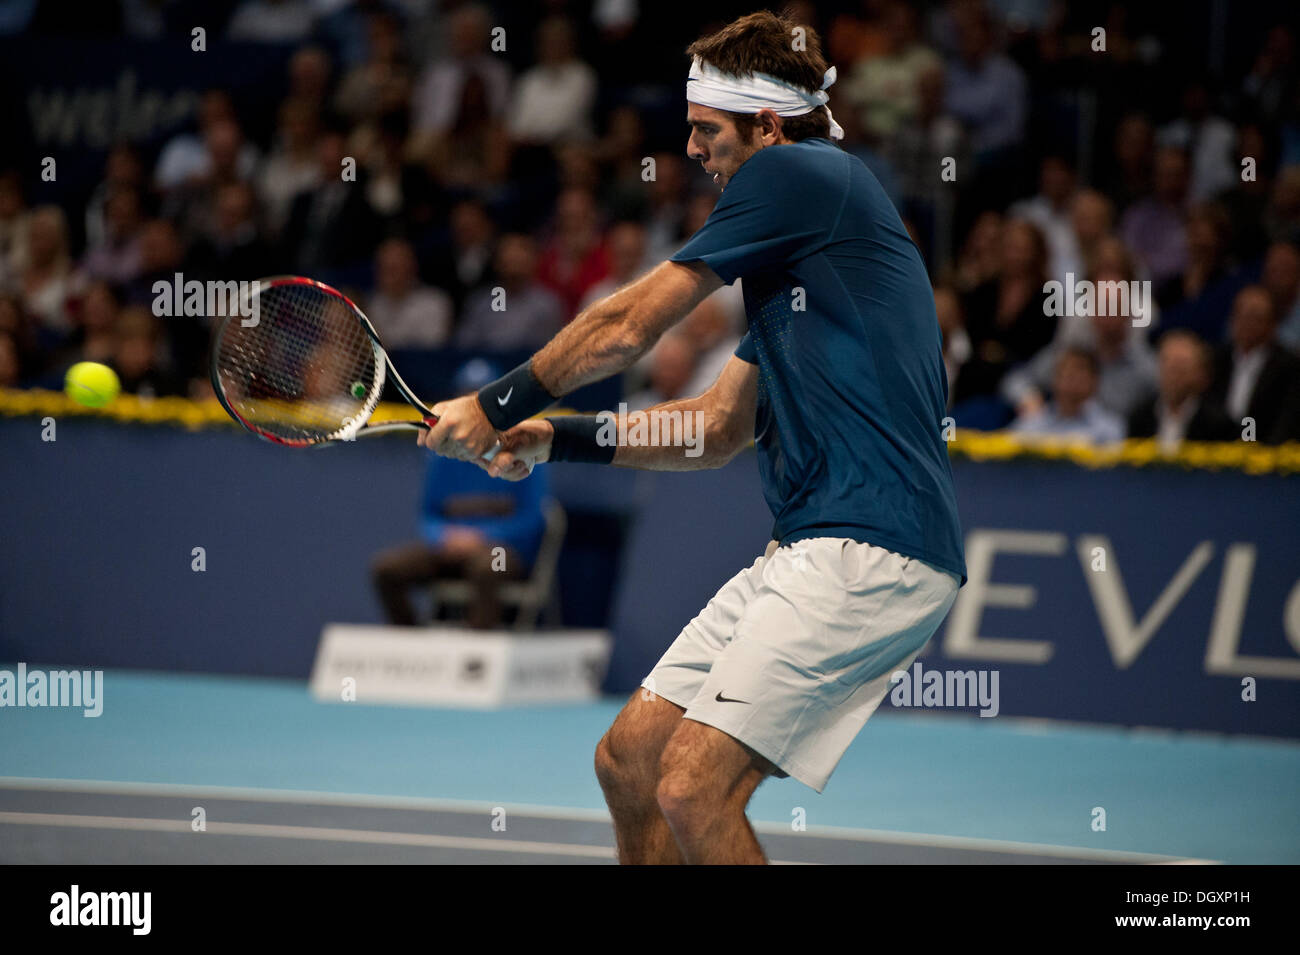 Basel, Switzerland. 27th Oct, 2013. J.M. Del Potro (ARG) hits the ball with a backhand during the final of the Swiss Indoors at St. Jakobshalle on Sunday. Photo: Miroslav Dakov/ Alamy Live News - Stock Image